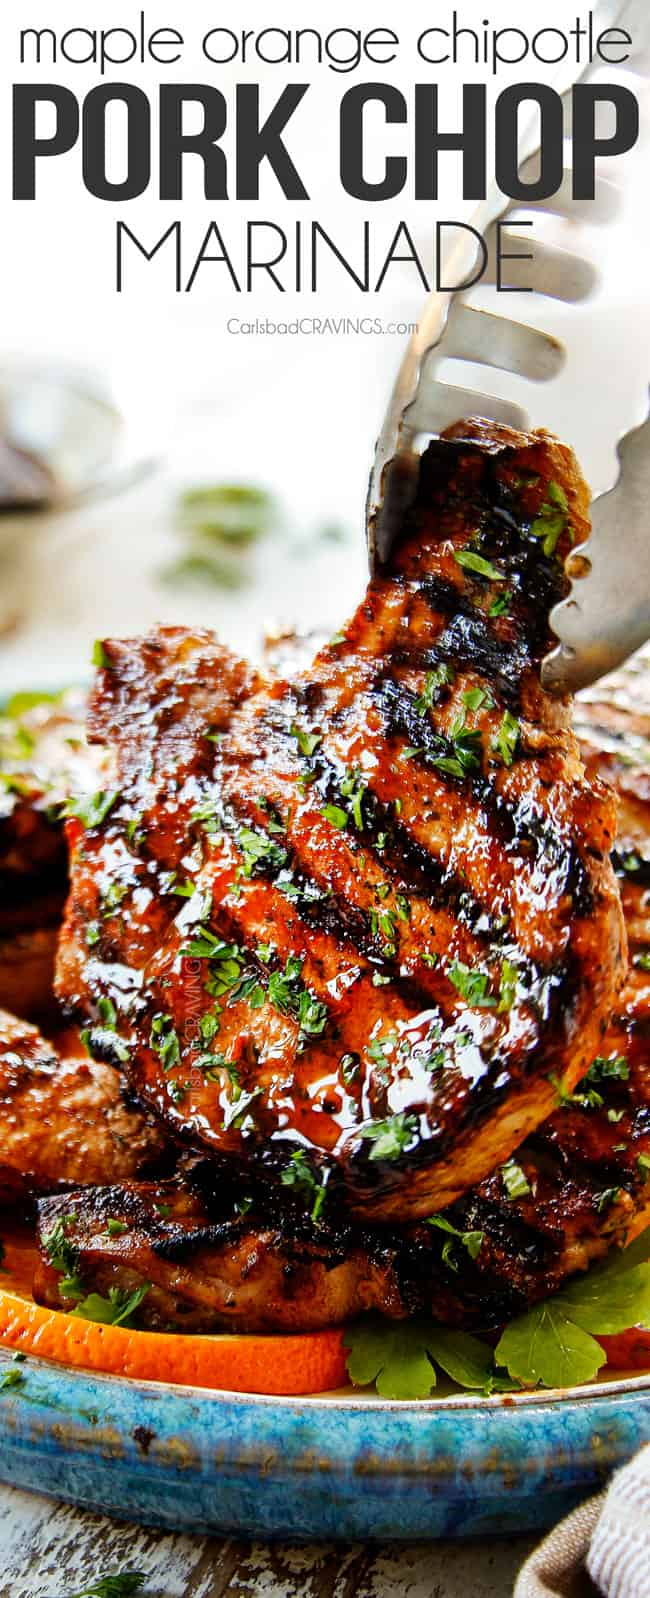 tongs holding up a grilled marinated pork chop